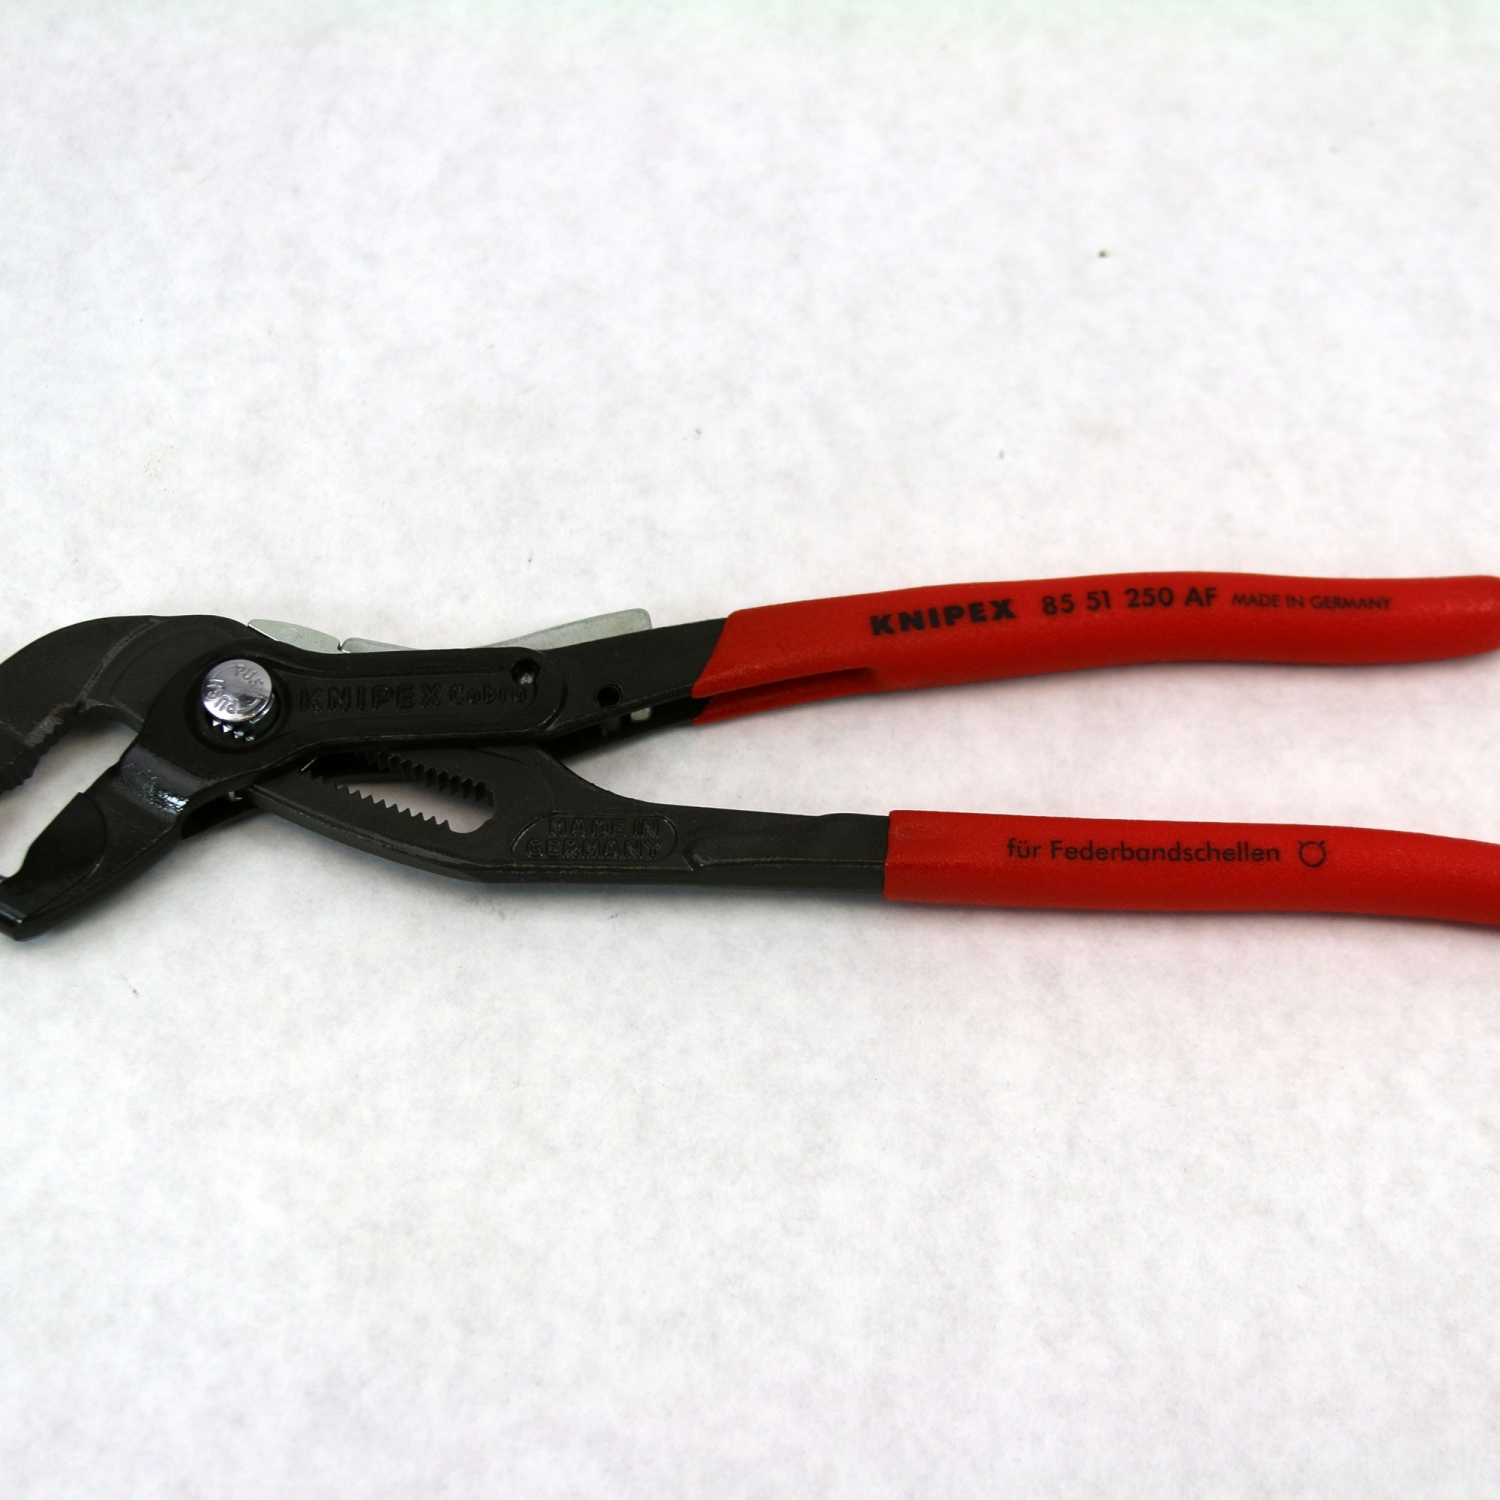 Knipex 8551250A 10-inch Chrome Vanadium Spring Band Forged Clamp Pliers